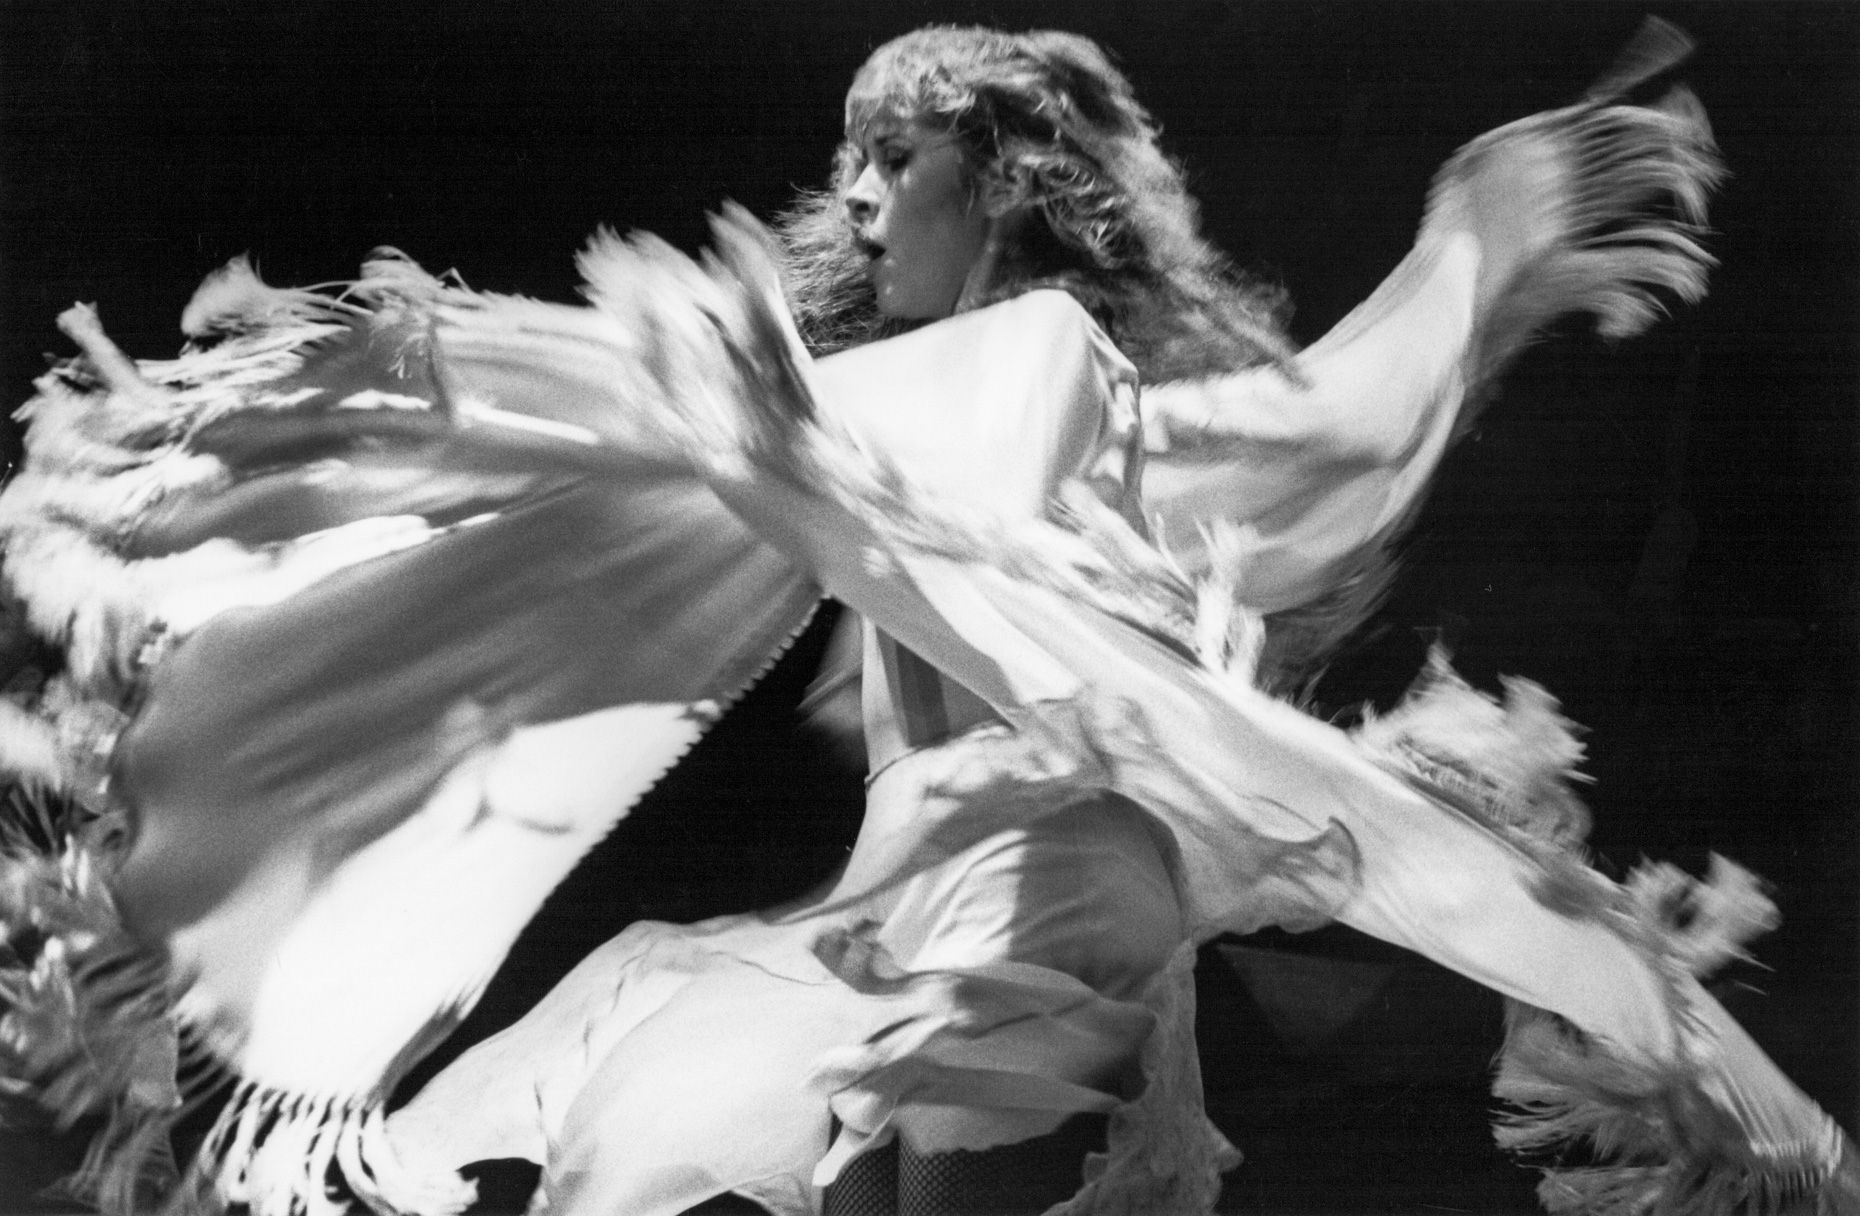 Stevie_Nicks Twirl